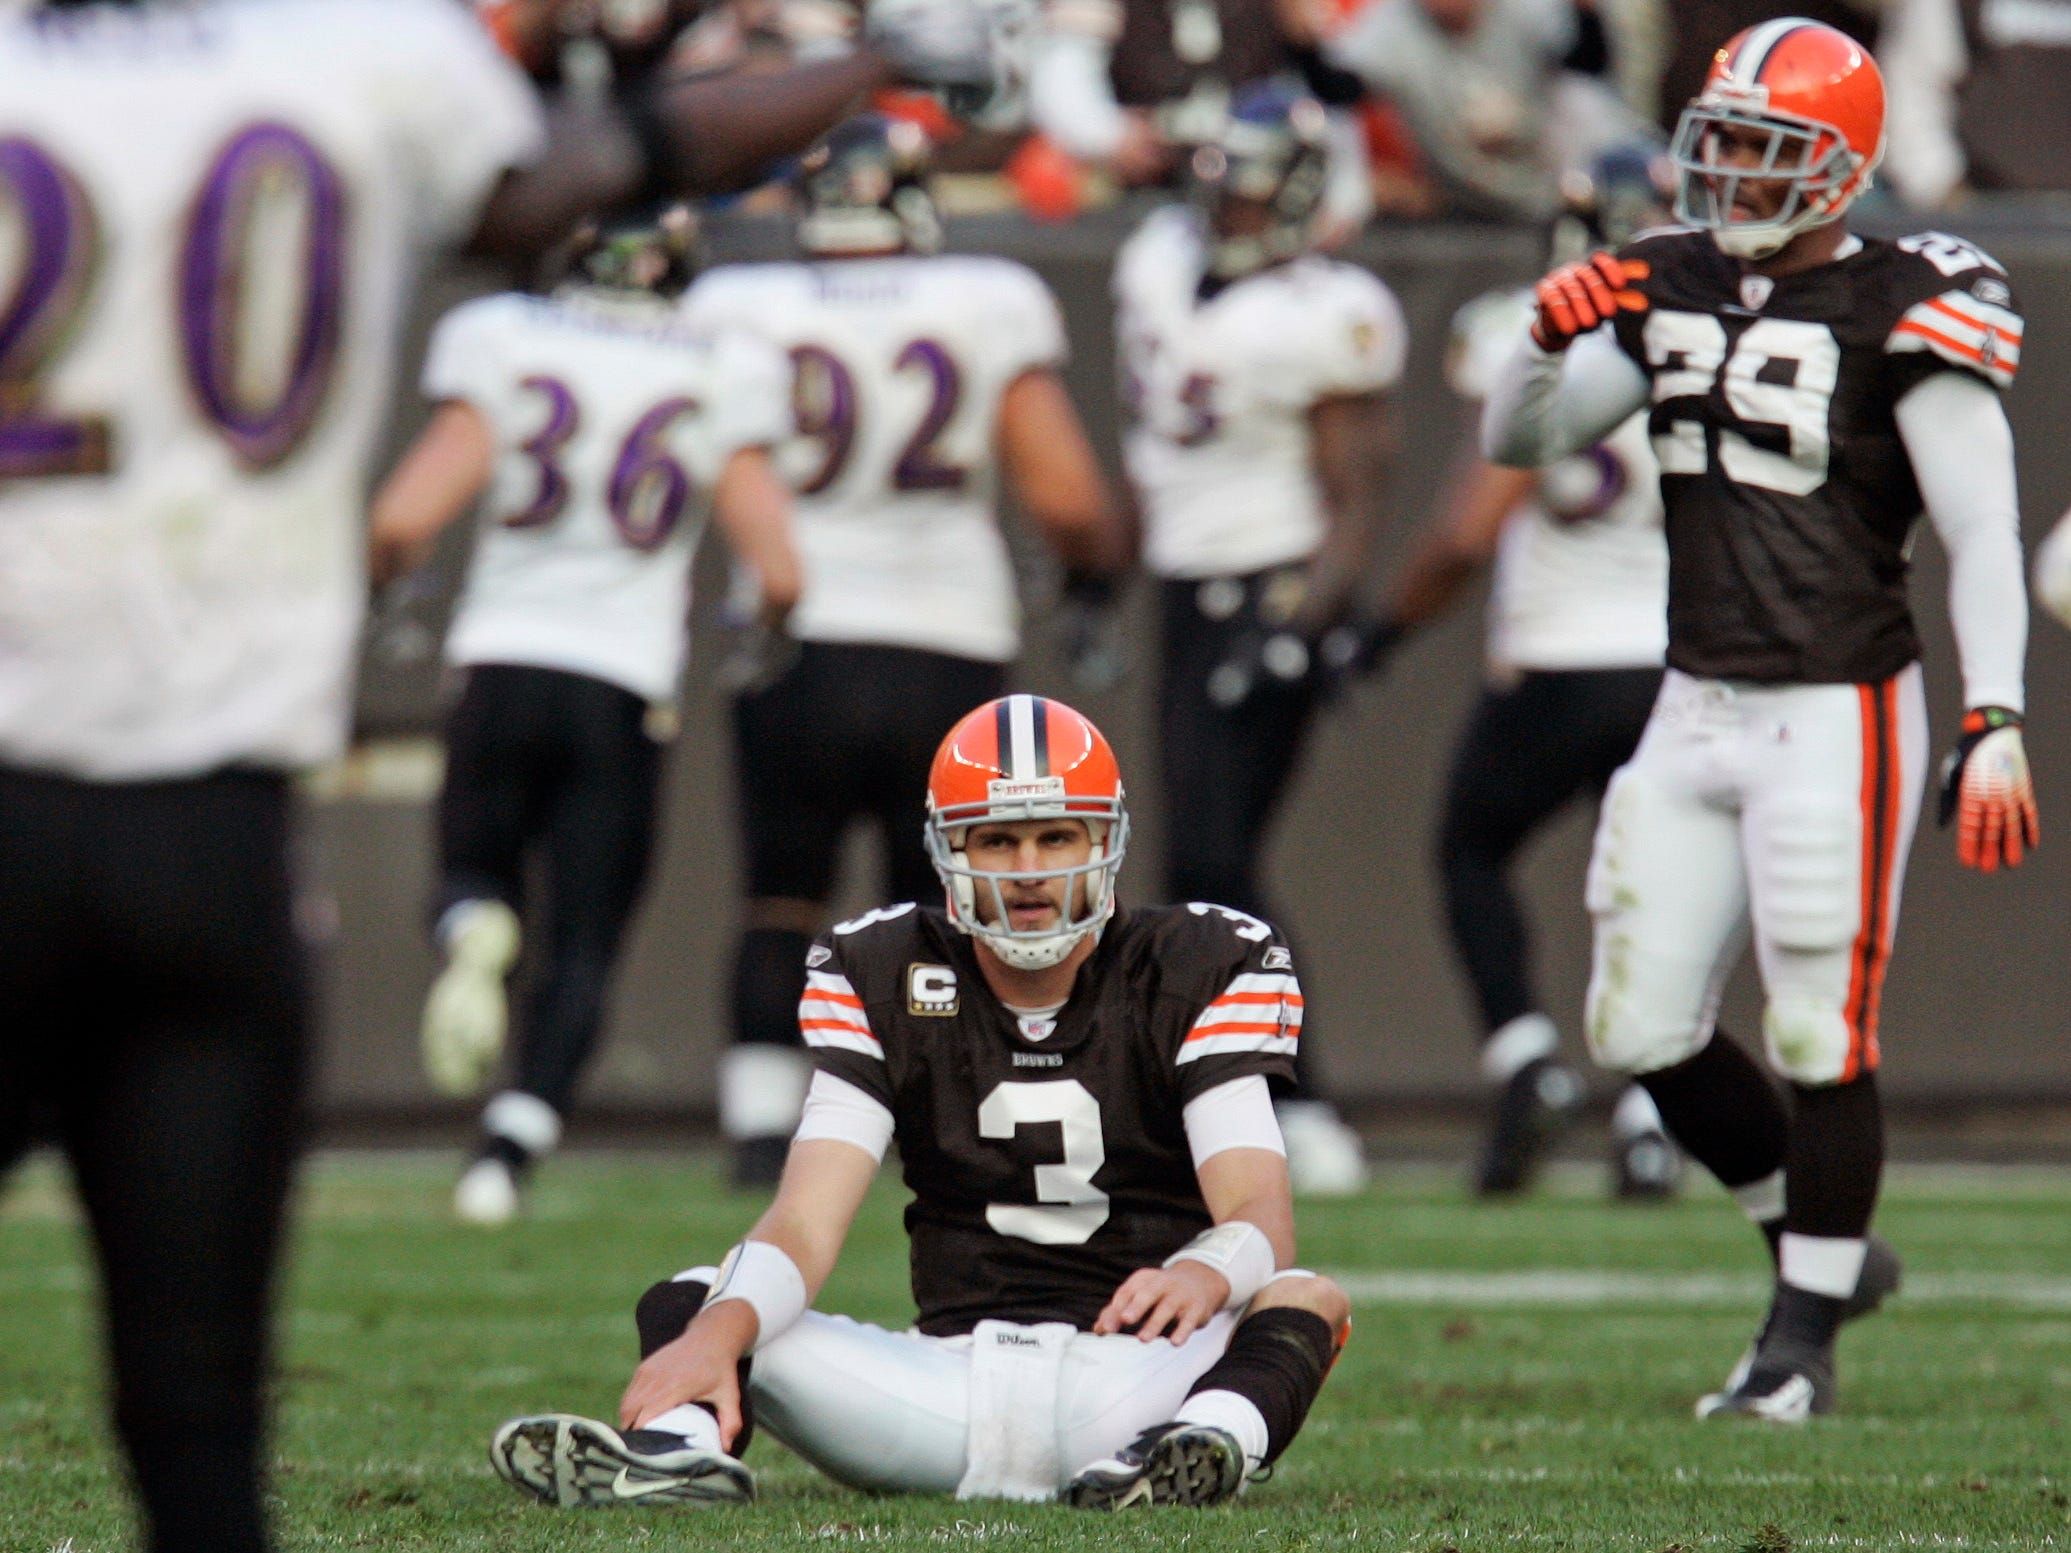 Cleveland Browns quarterback Derek Anderson (3) sits on the turf after throwing an interception that Baltimore Ravens linebacker Terrell Suggs returned for a touchdown in the fourth quarter of an NFL football game Sunday, Nov. 2, 2008, in Cleveland. Baltimore won 37-27.